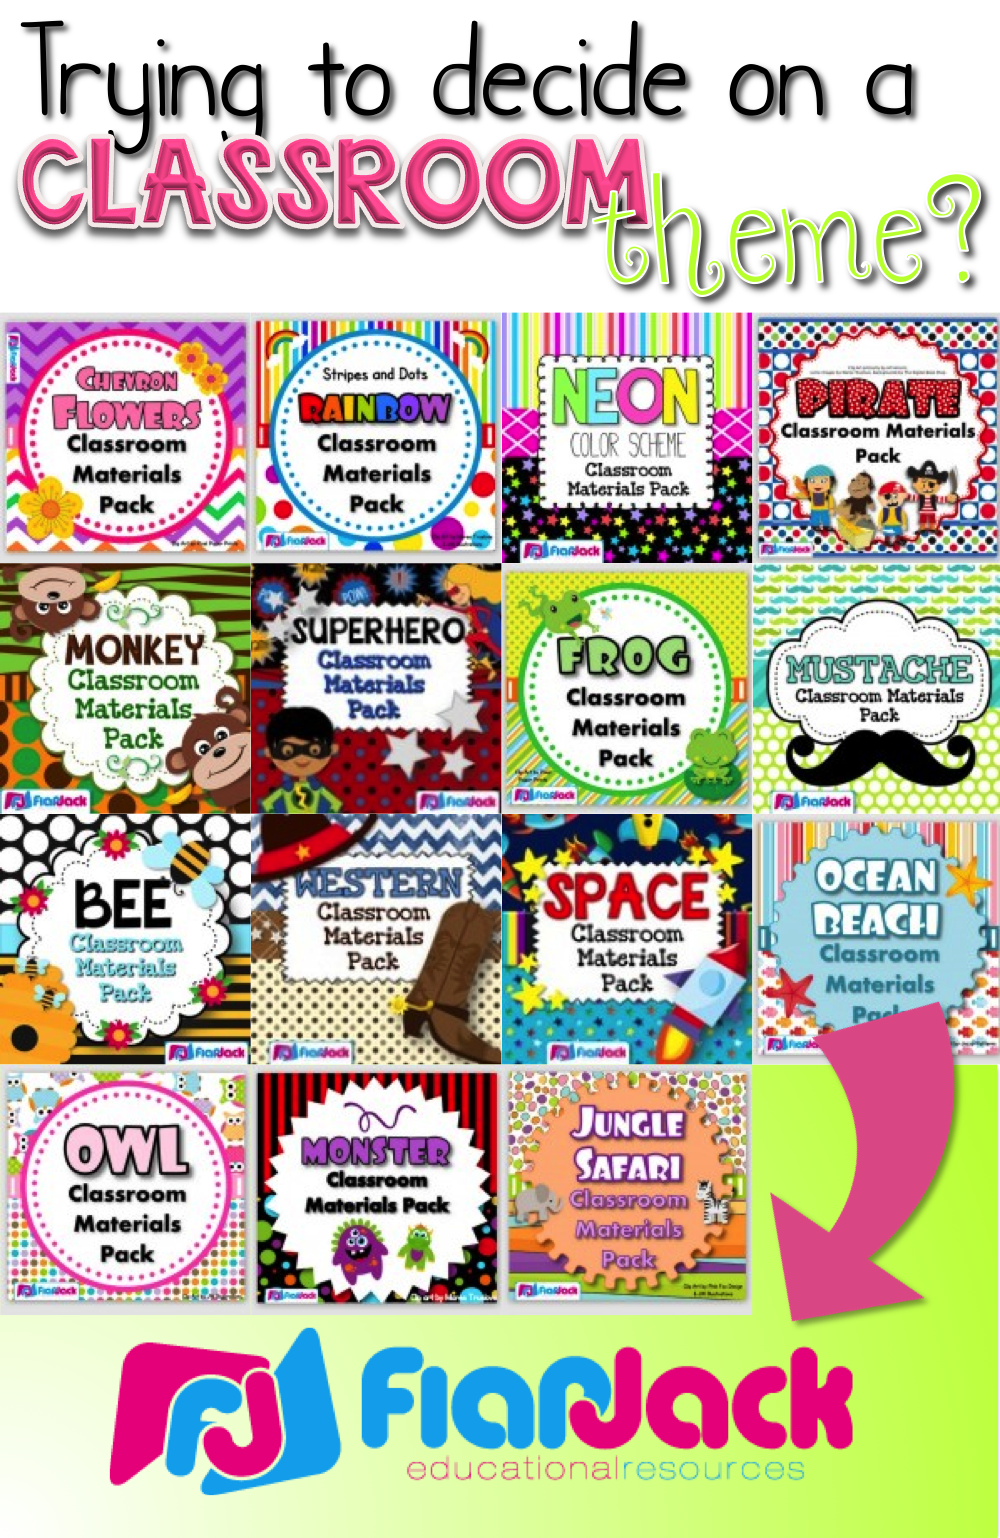 Over 15 classroom theme designs to choose from with loads of materials to  create a bright learning environment   684a484c970b0